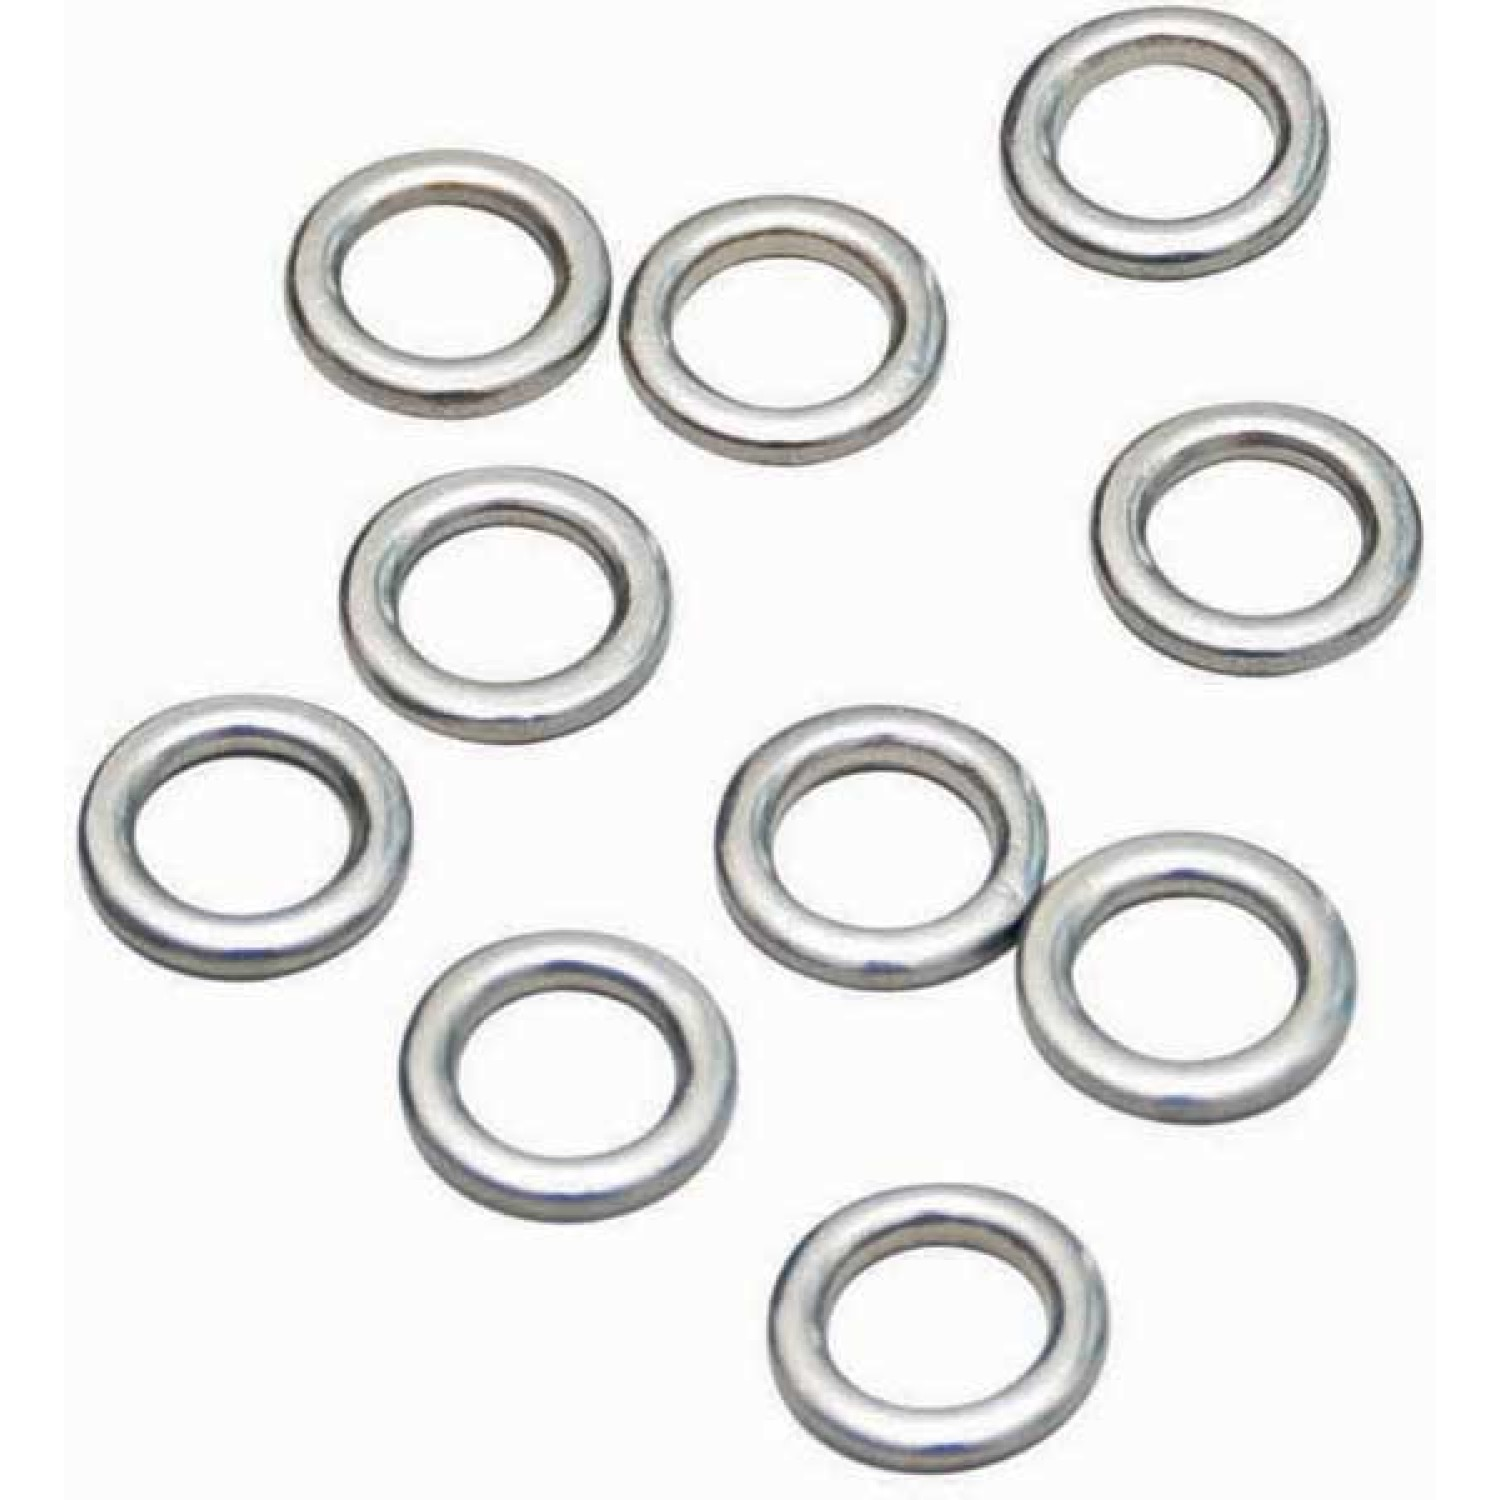 QUANTUM Assist Solid Rings, 10pcs